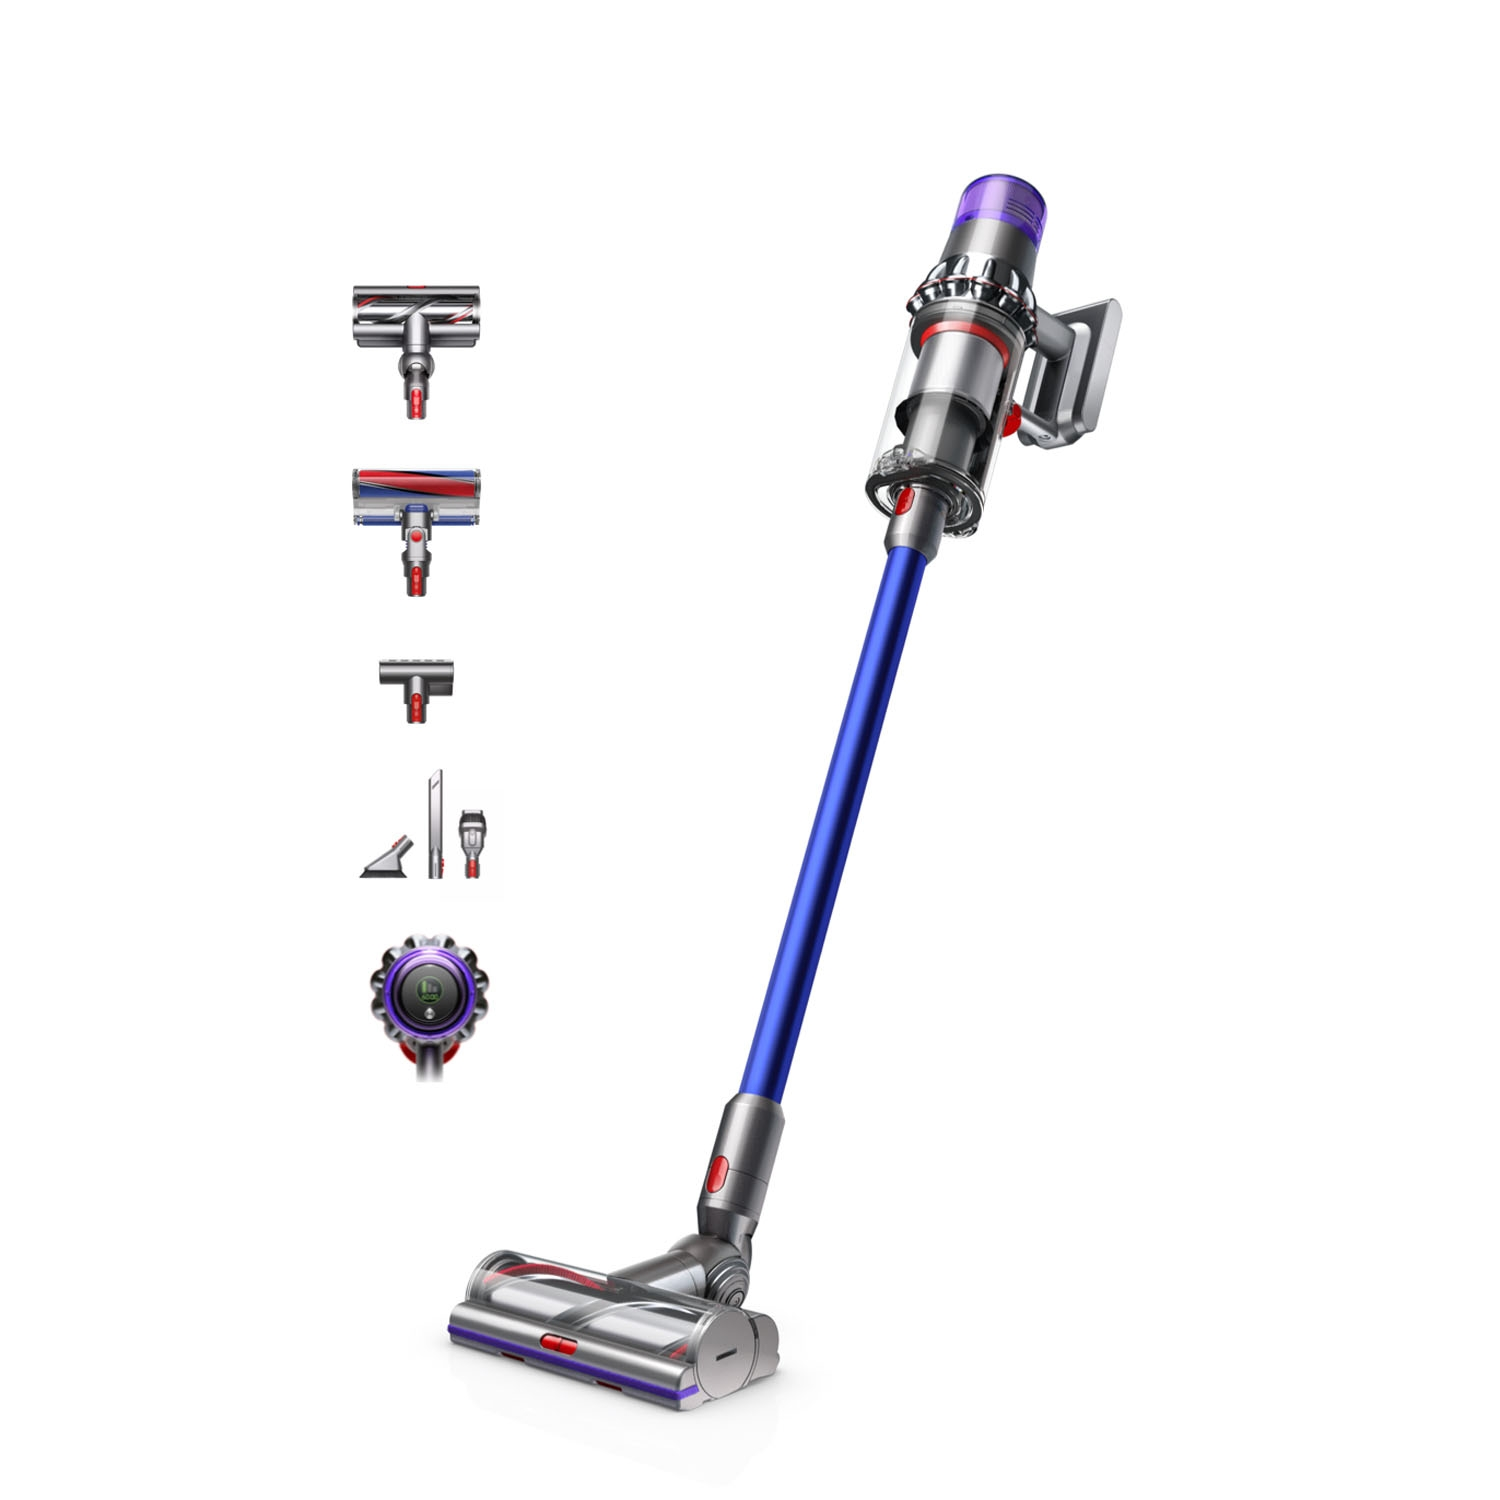 Image of Dyson V11 Absolute+ Cordless Vacuum Cleaner